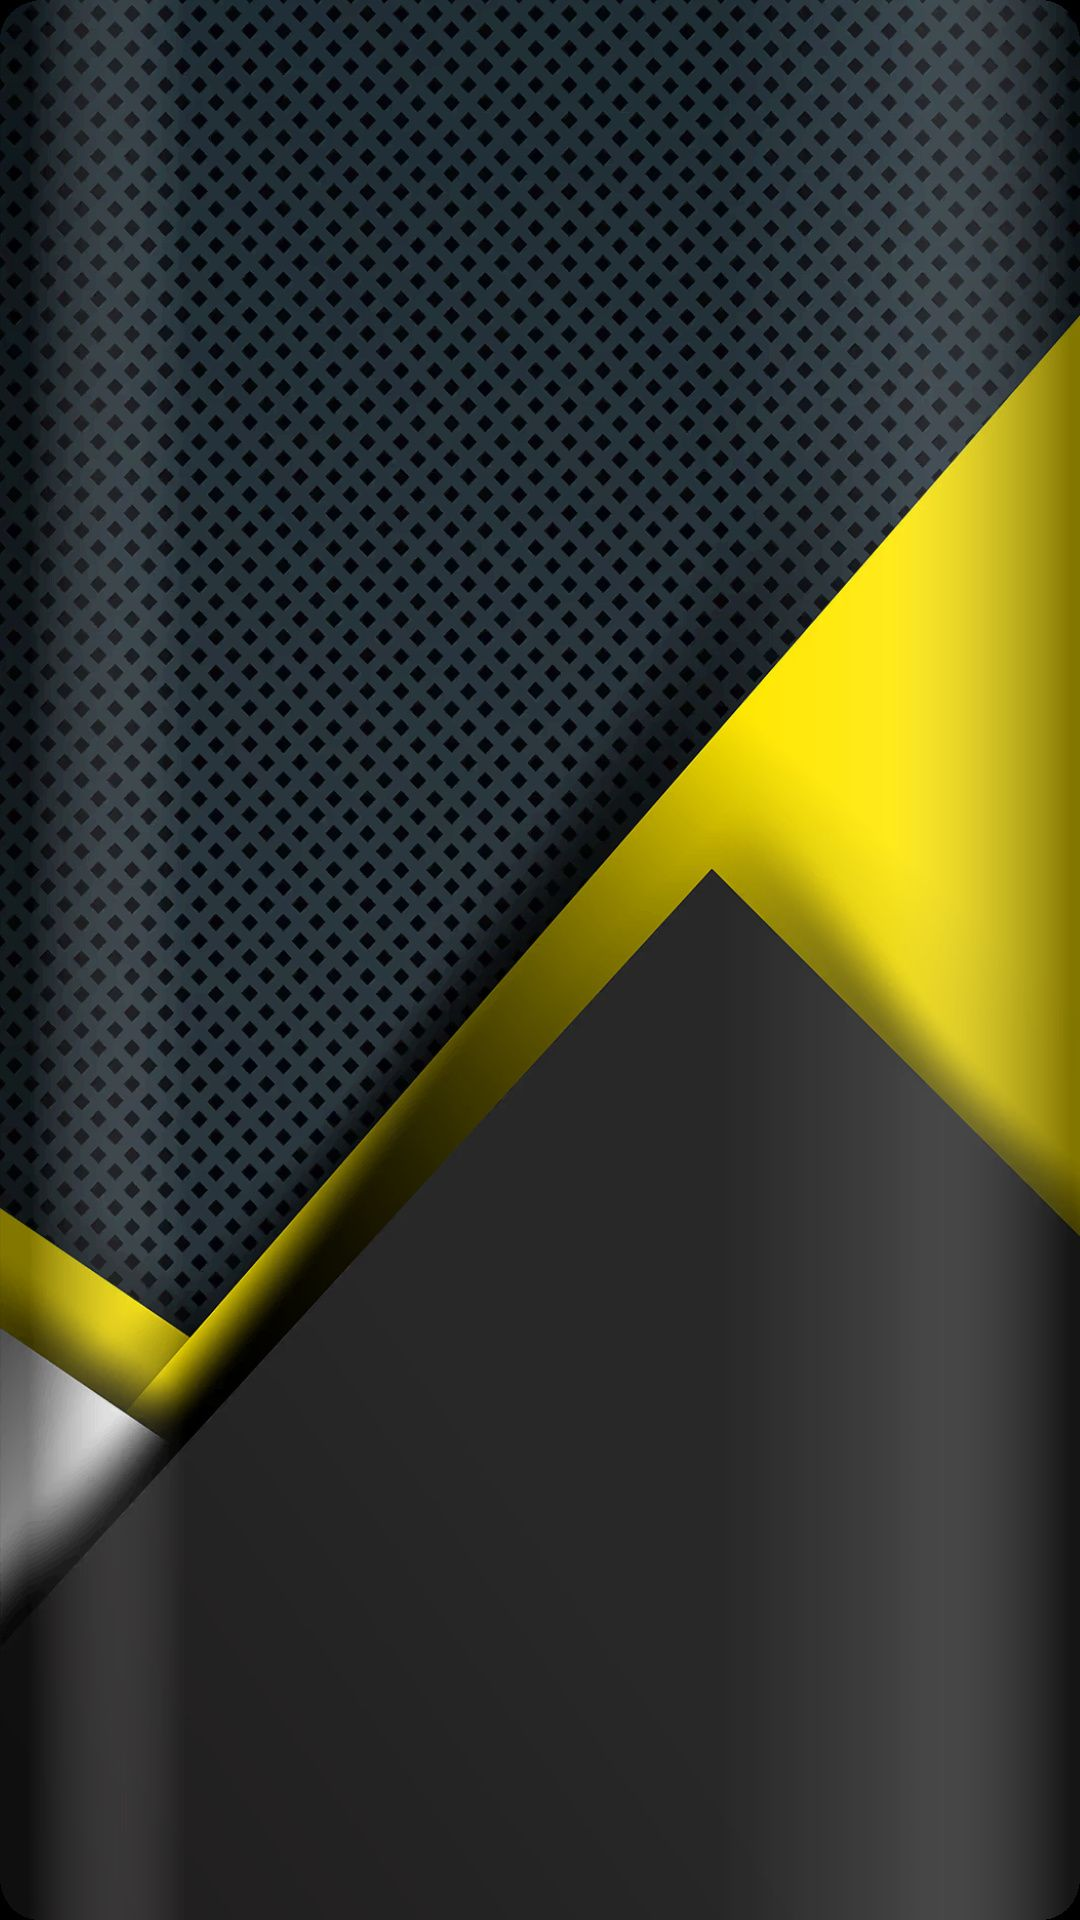 Abstract Shape Design And Pattern Wallpaper In Hd Resolution Designed And Sized Specifically To F Mobile Wallpaper Pattern Wallpaper Abstract Iphone Wallpaper